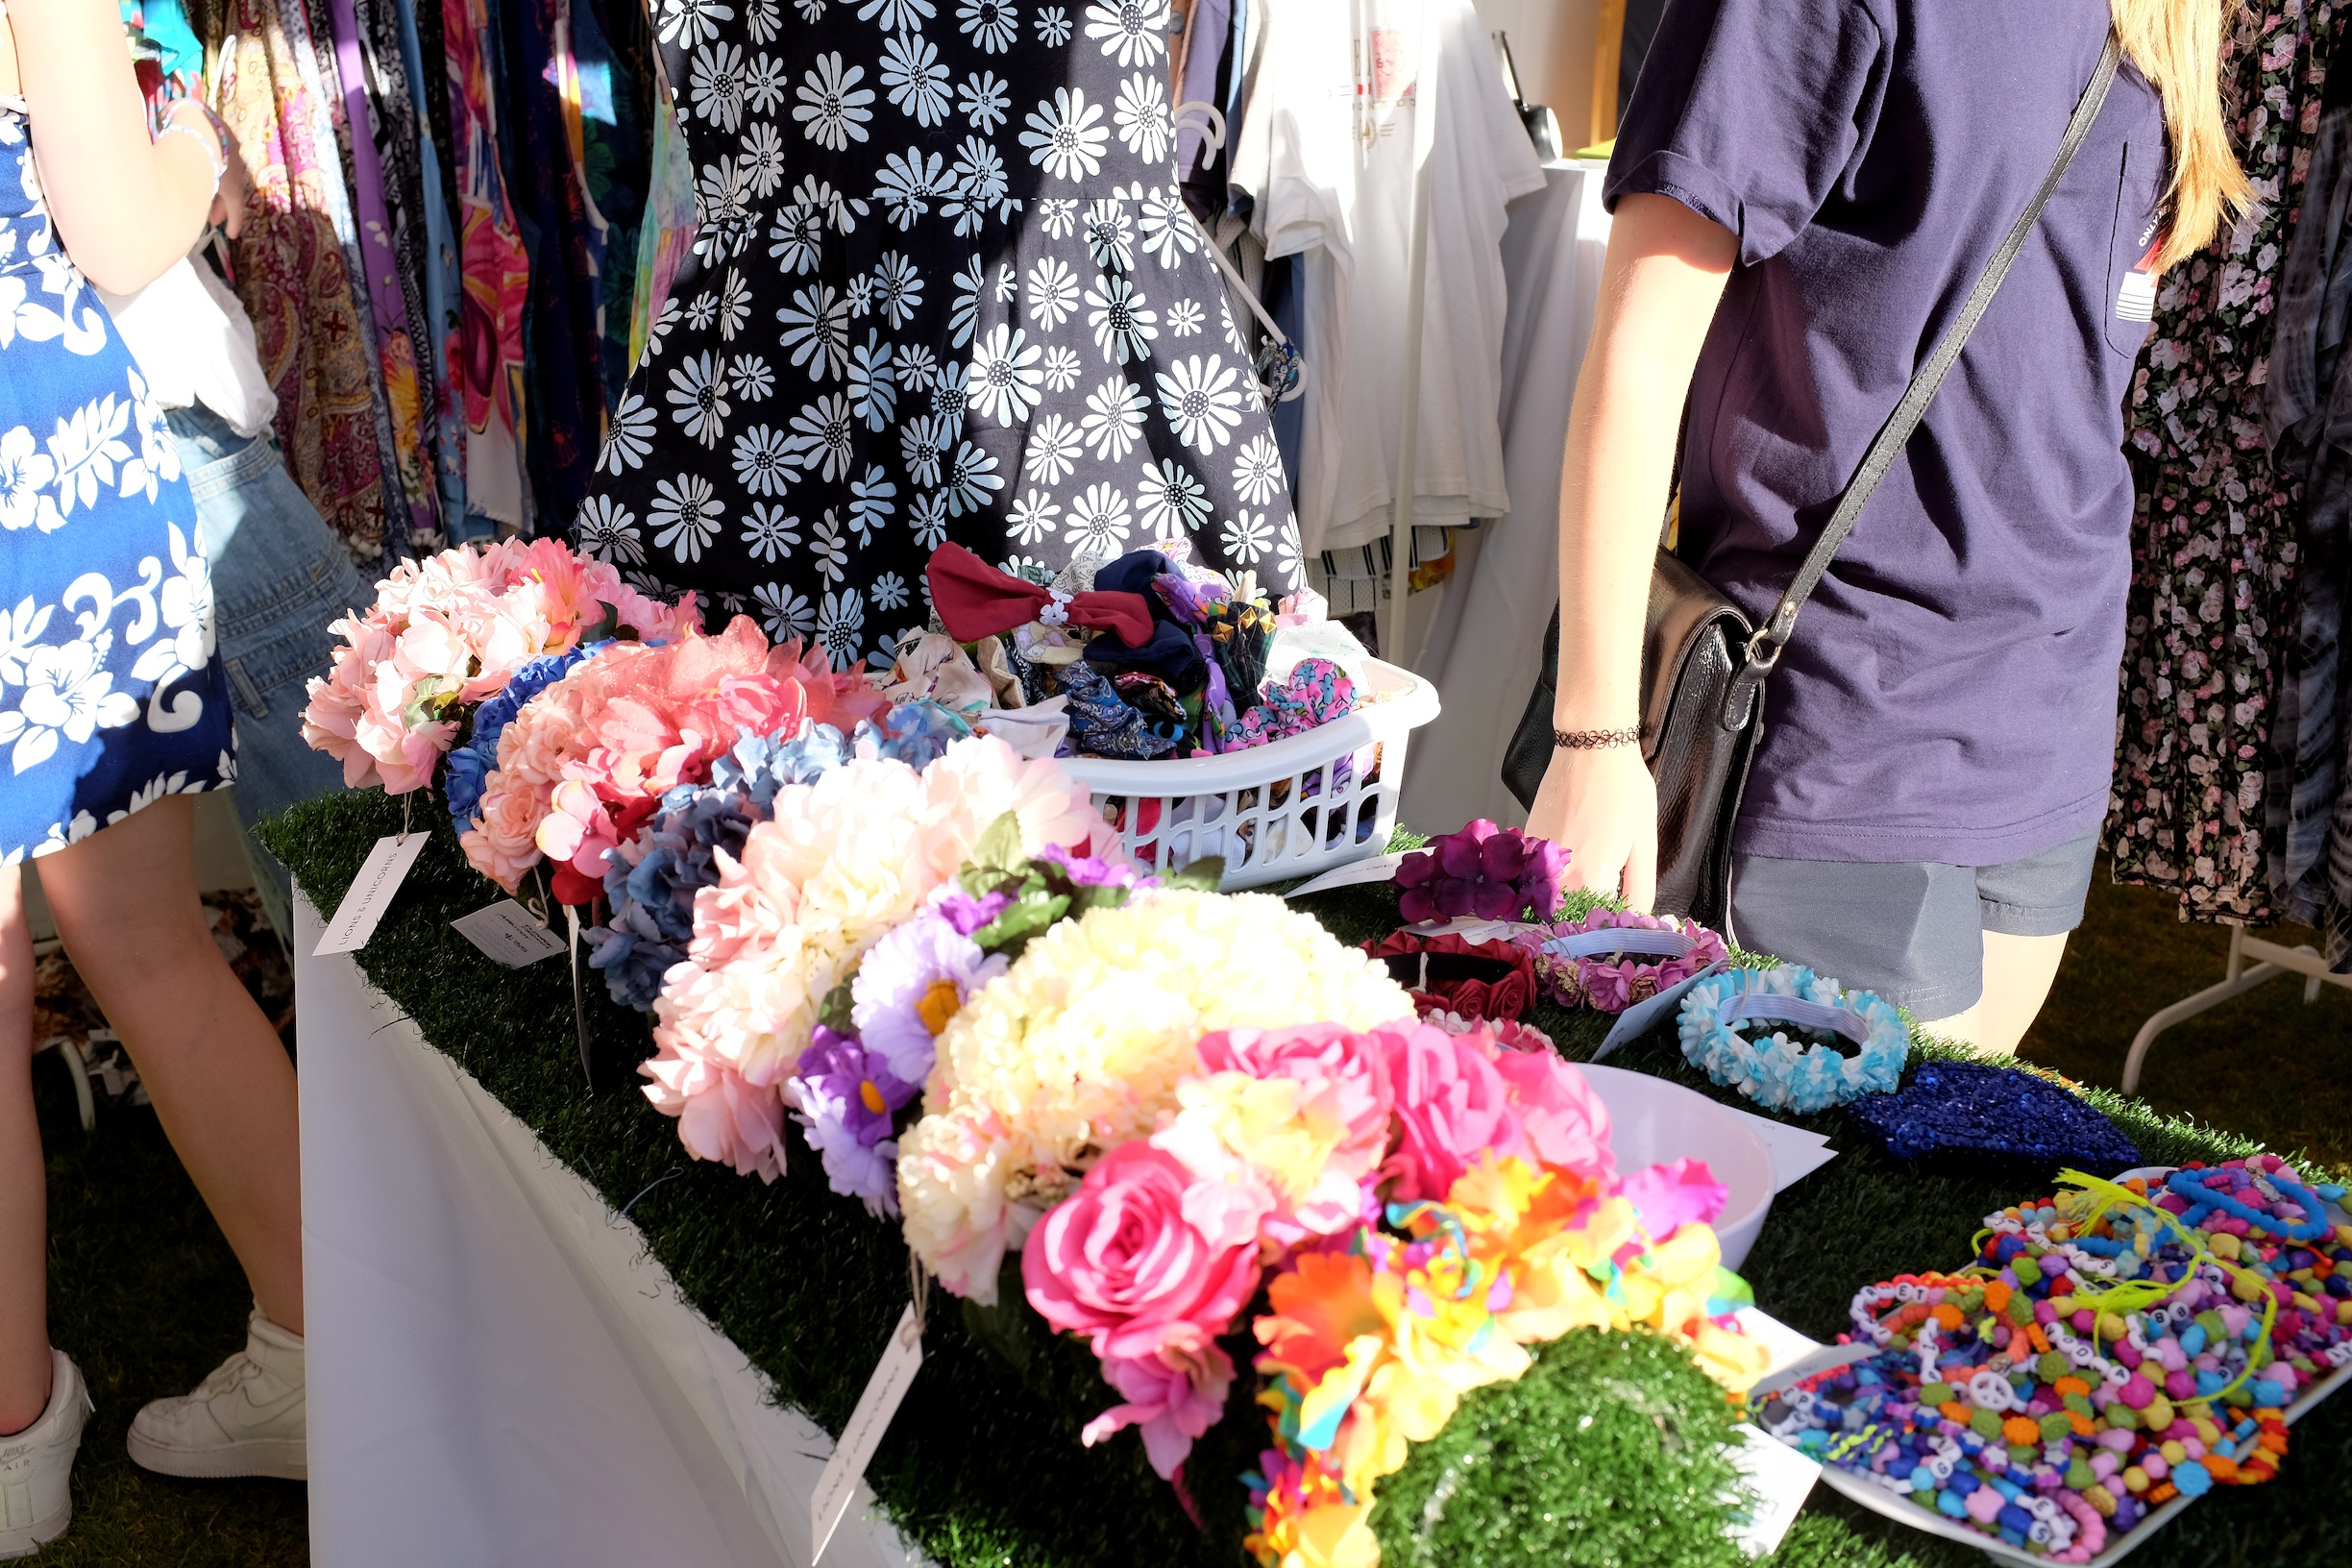 vintage markets, perth, scarborough beach, second hand, thrift, summer, shopping, nezuki, blogger, australia, fashion